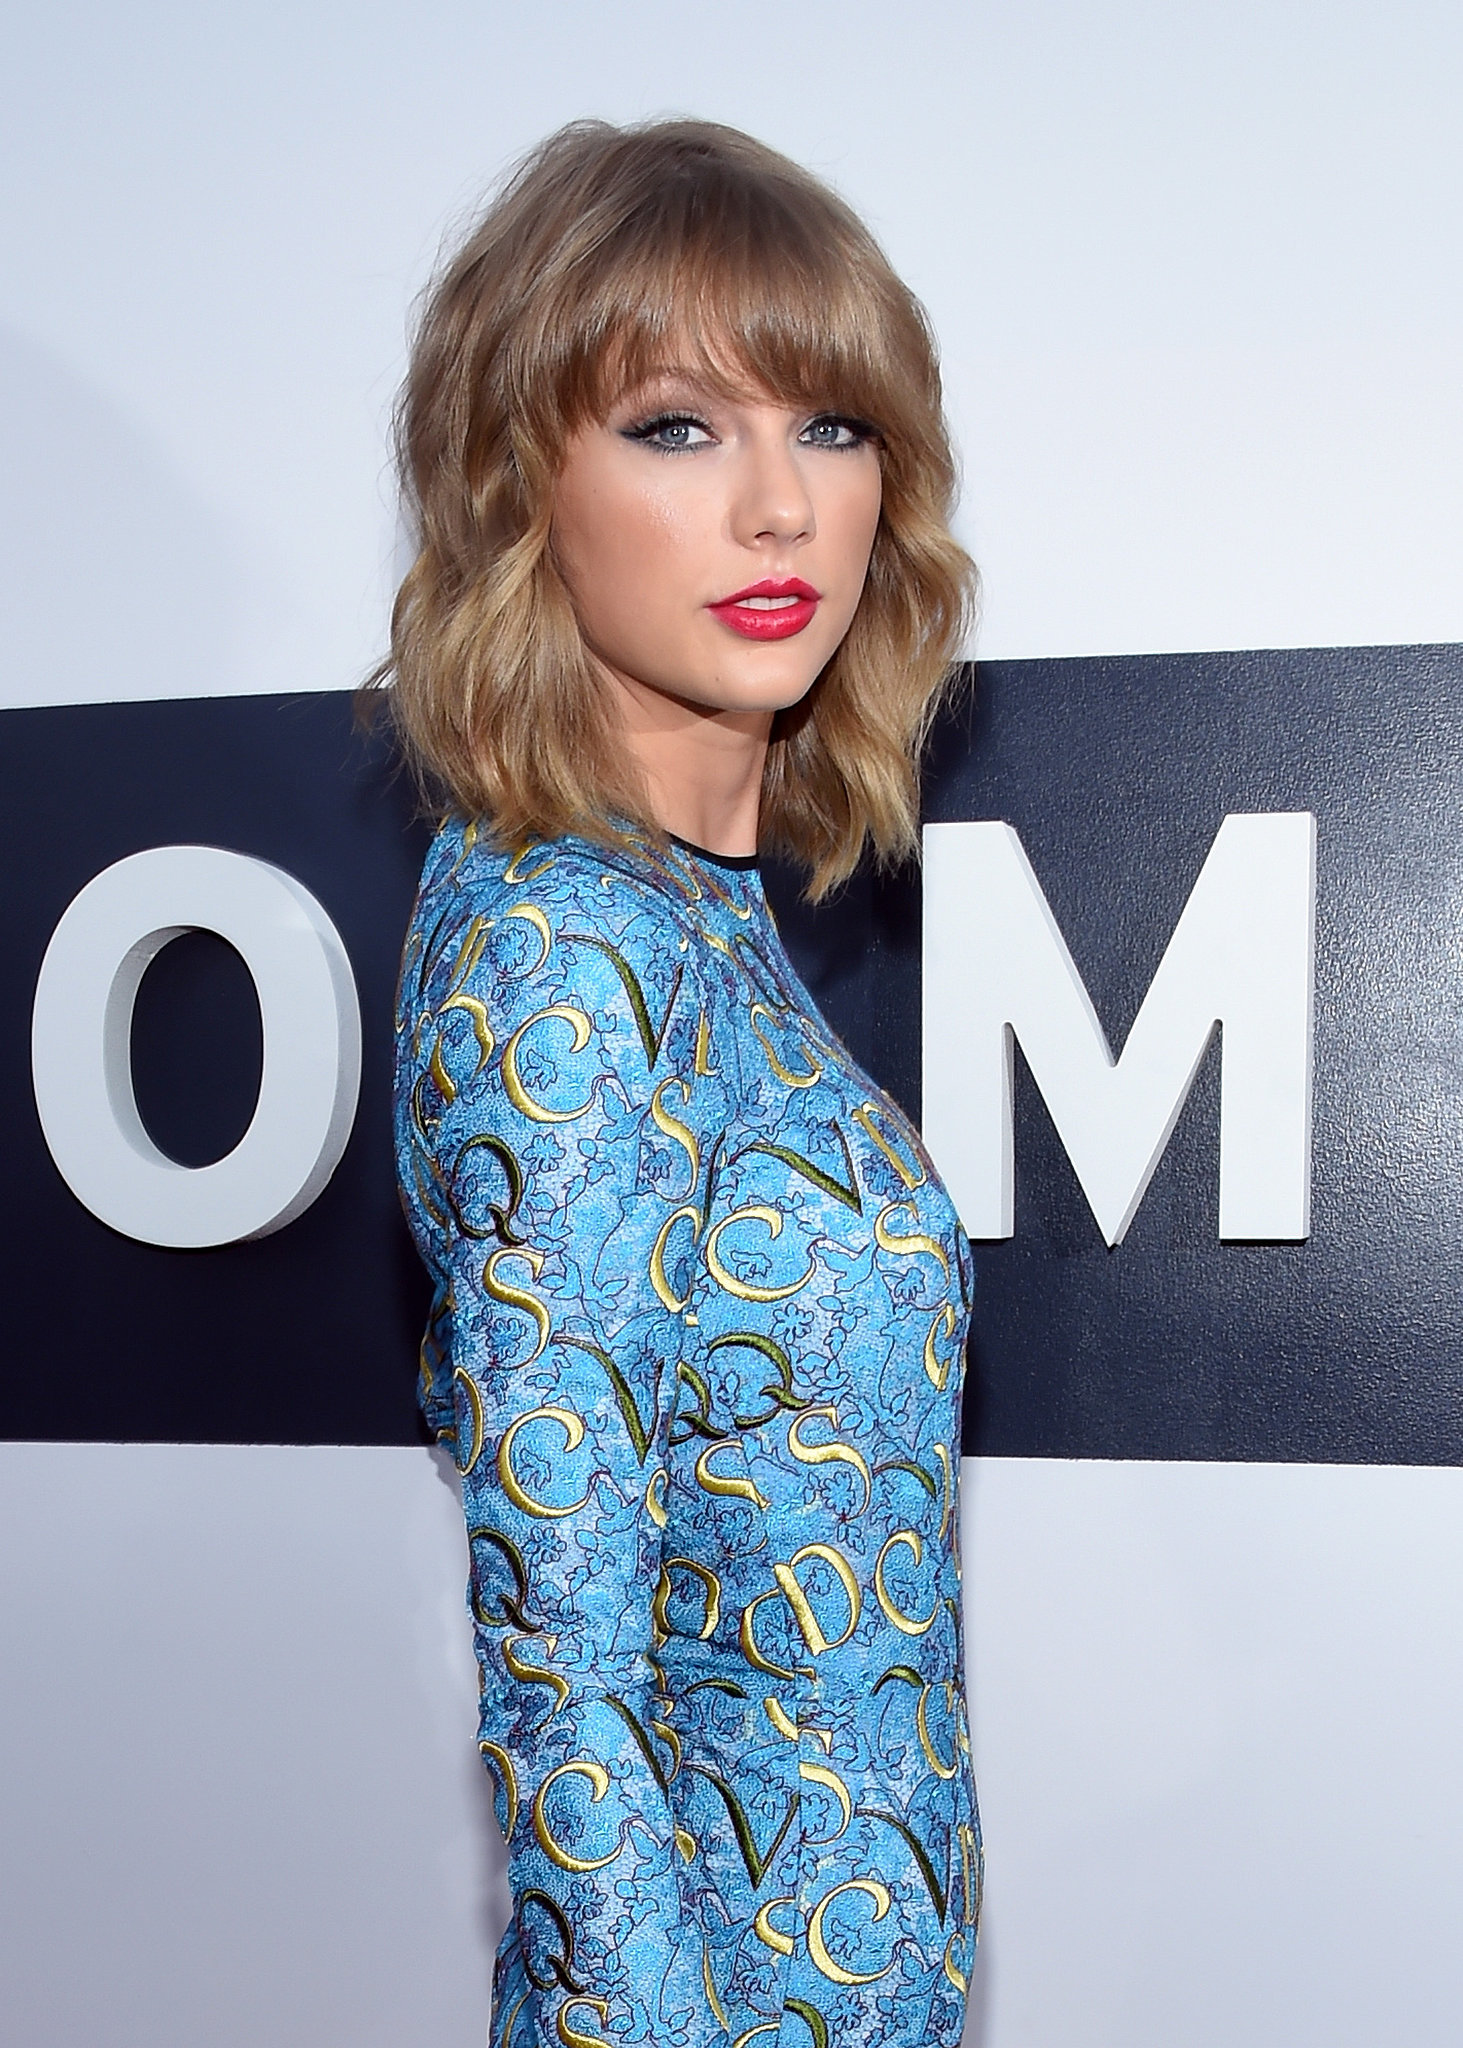 taylor swift wallpapers high quality | download free